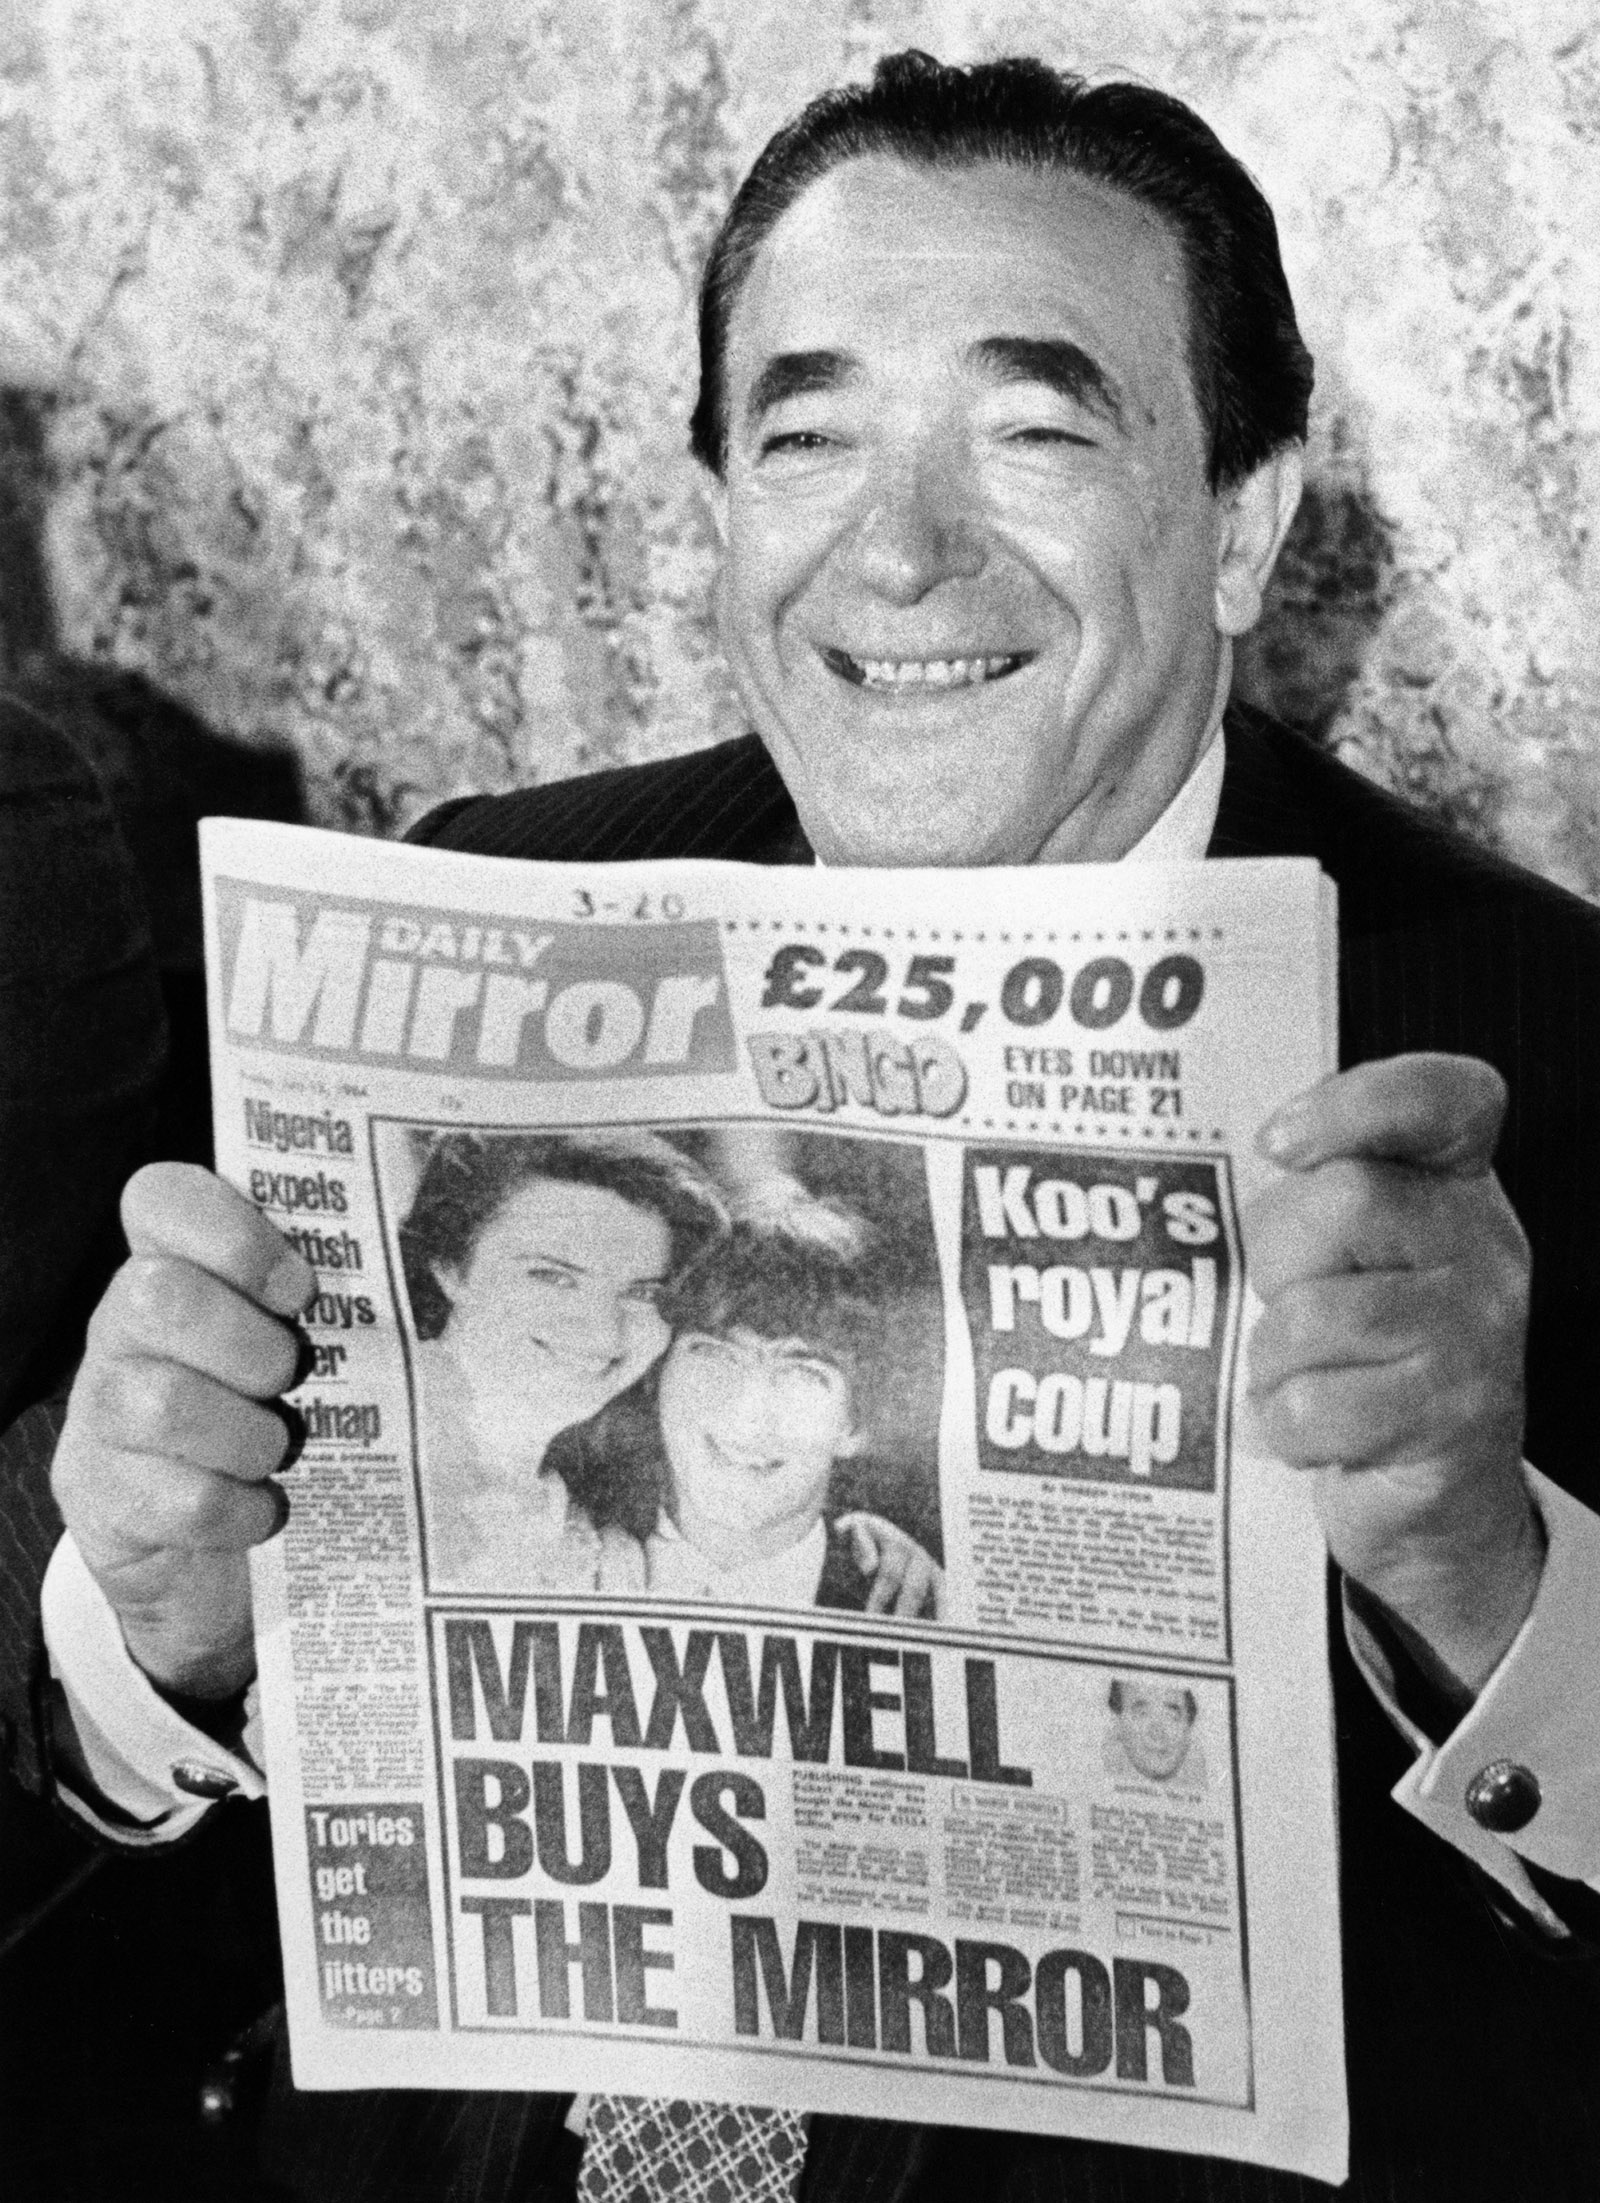 Robert Maxwell announcing his acquisition of Mirror Group Newspapers